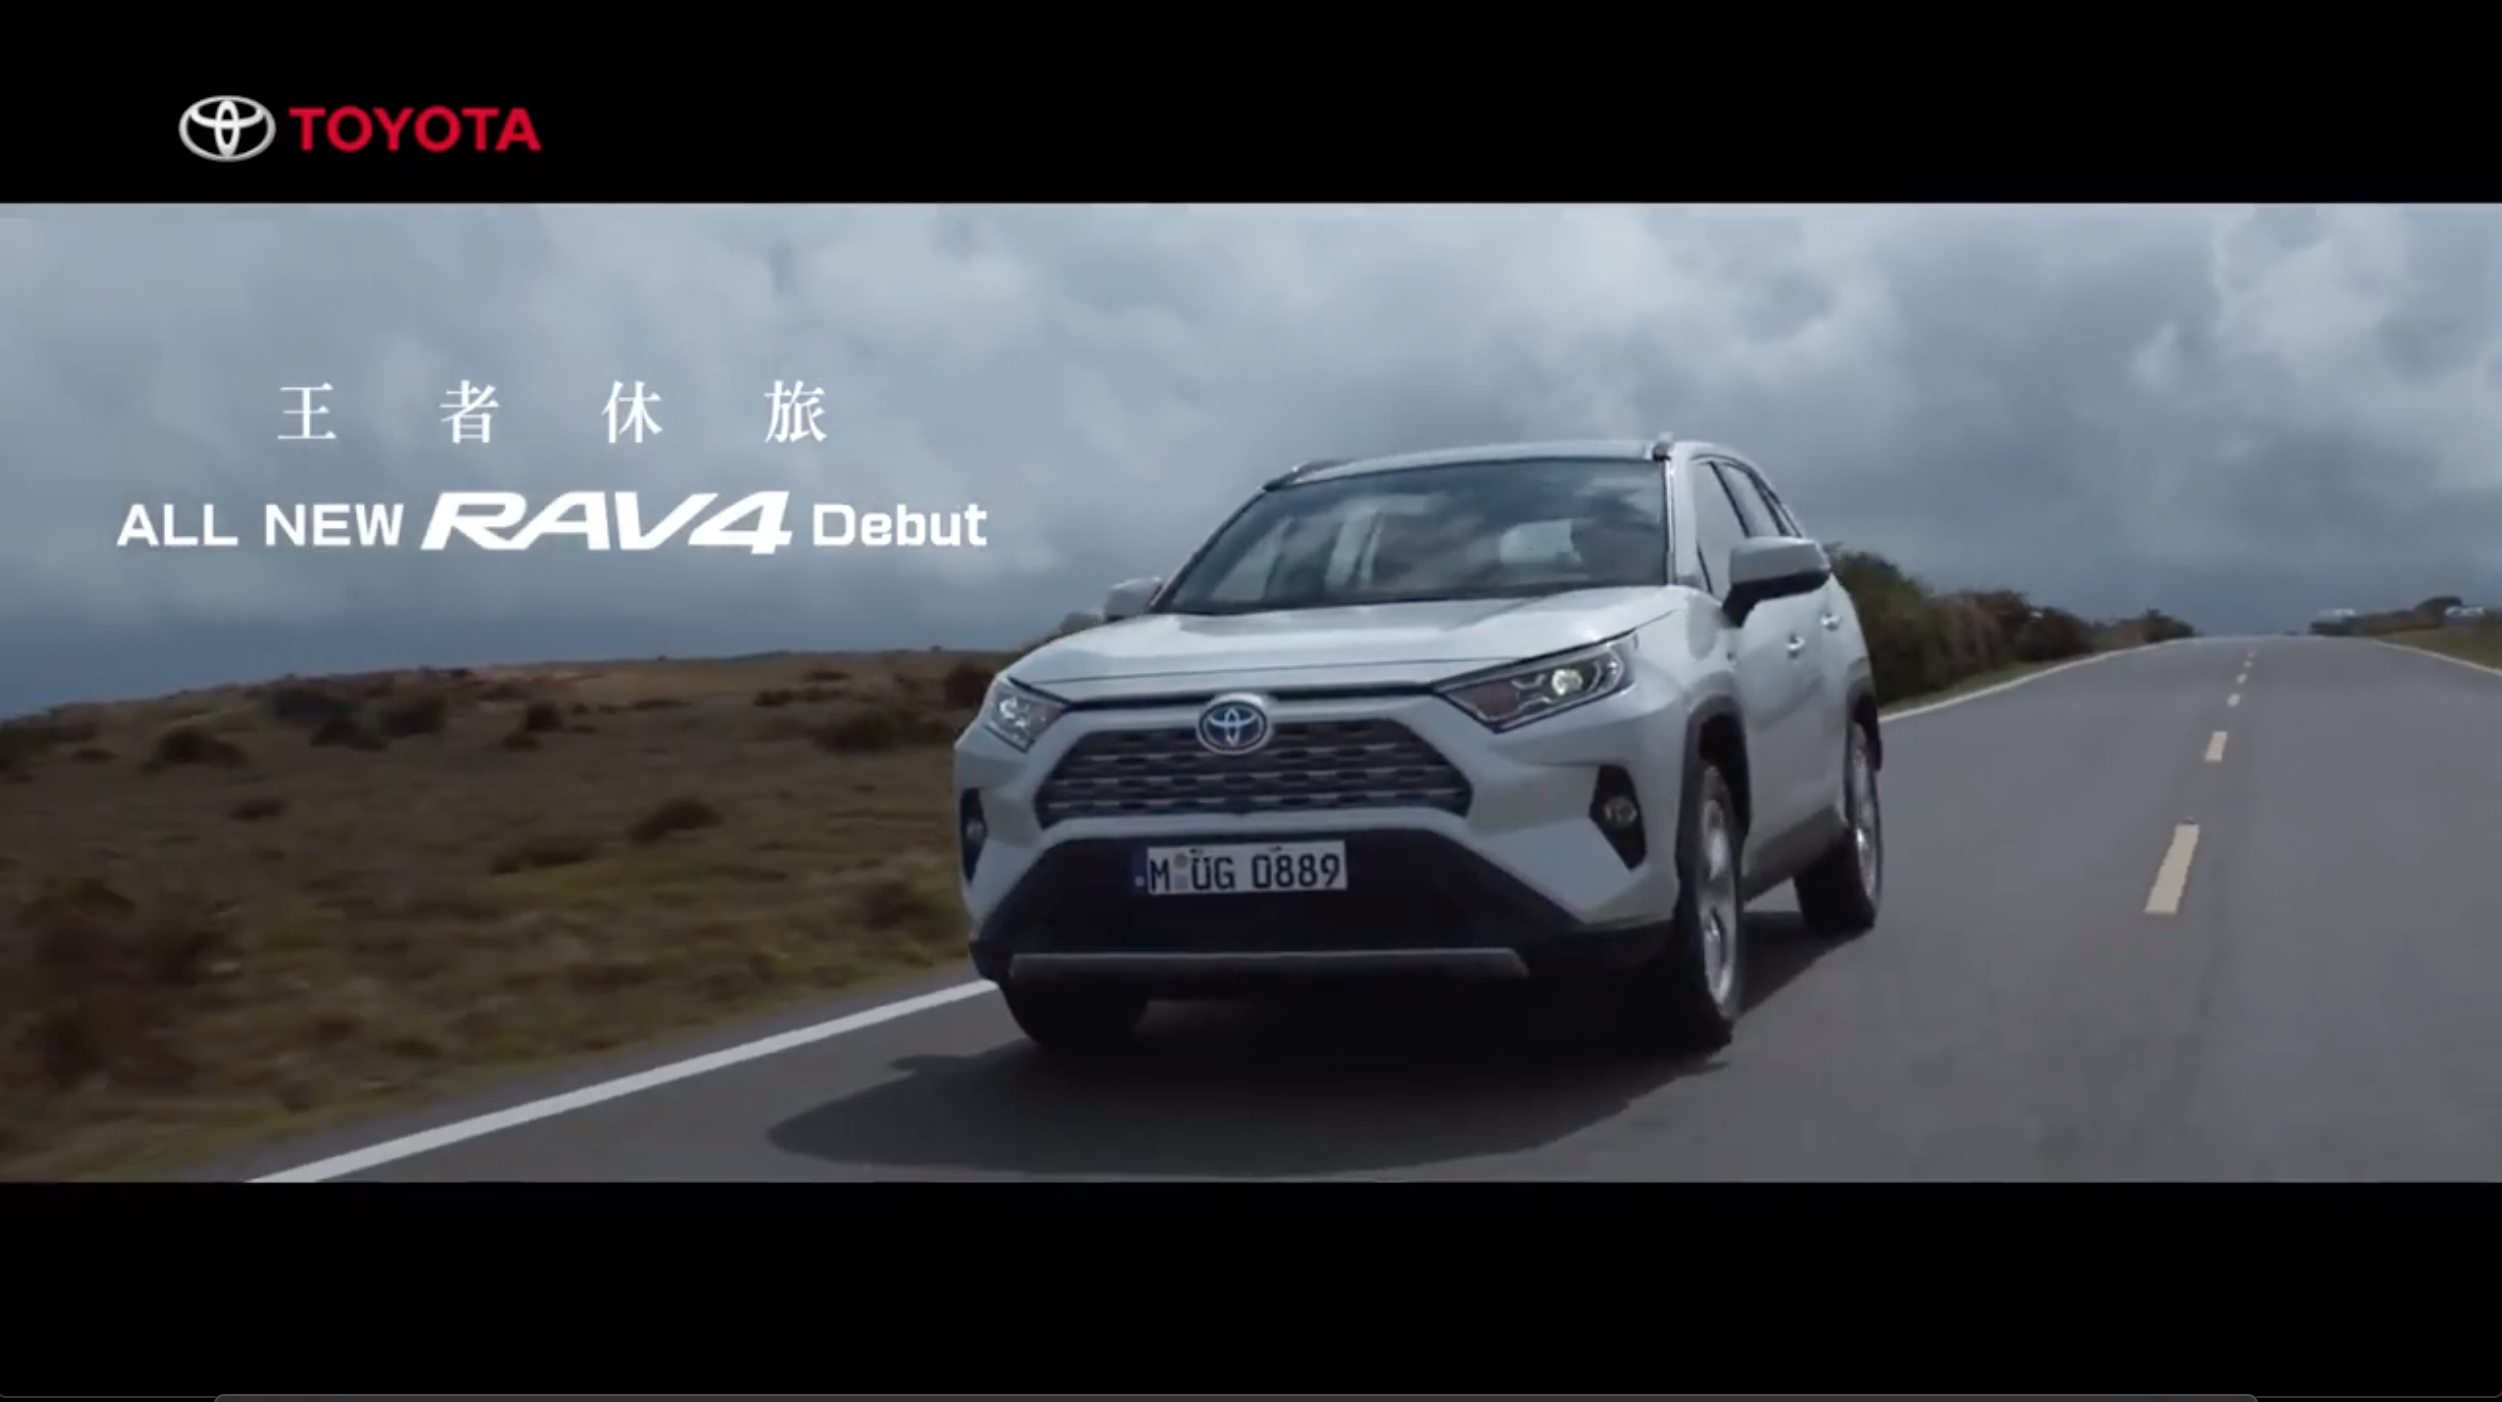 王者休旅 TOYOTA All New RAV4